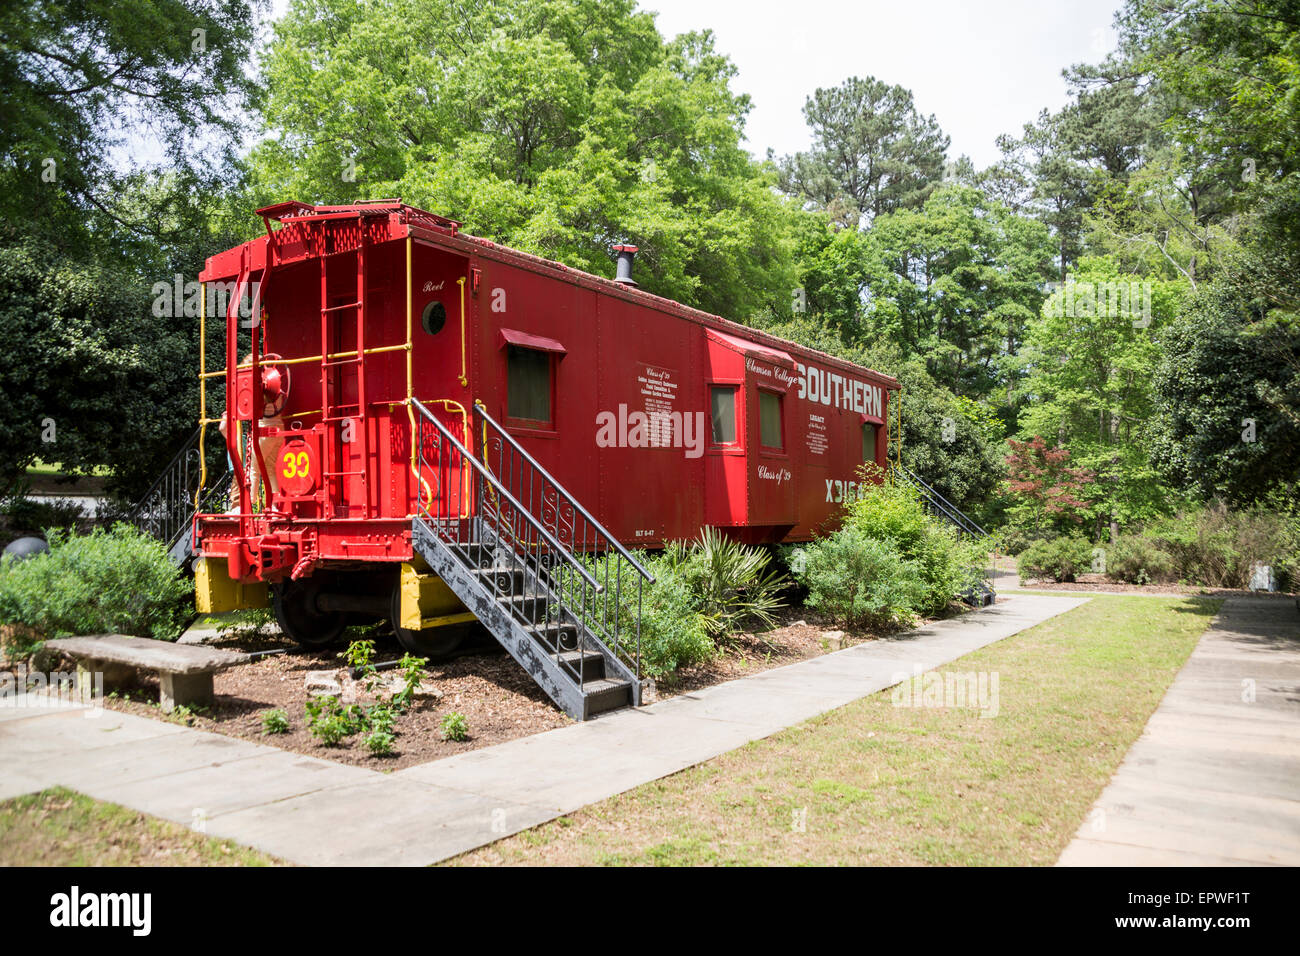 Bon Class Of 1939 Caboose Garden, South Carolina Botanical Gardens, Clemson,  South Carolina, USA